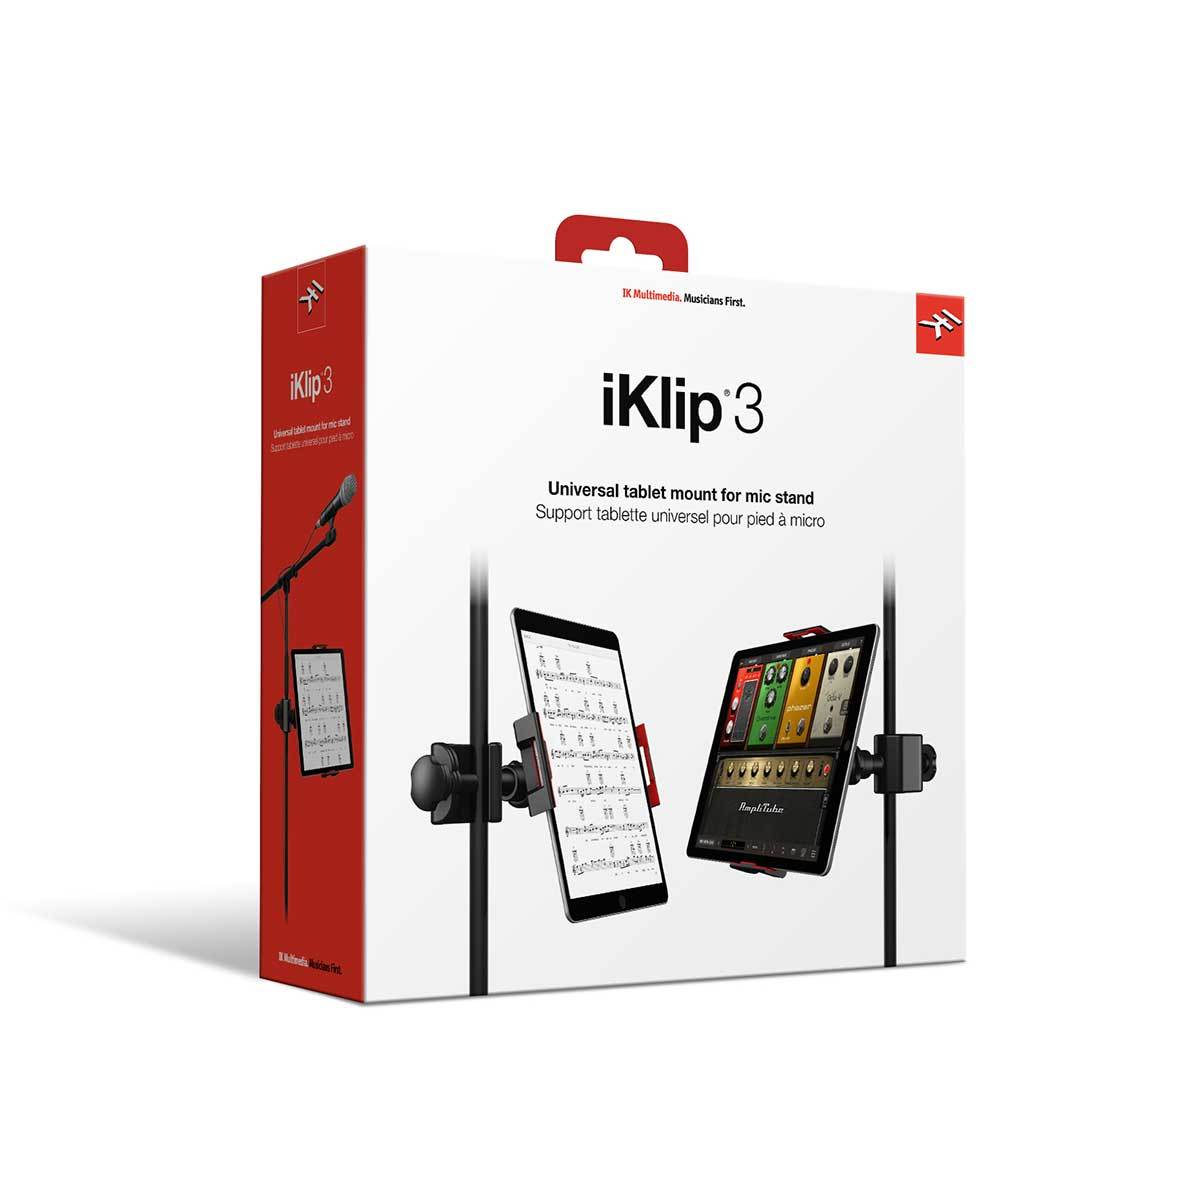 IK Multimedia Iklip 3 Universal stand mount for tablets and iPad